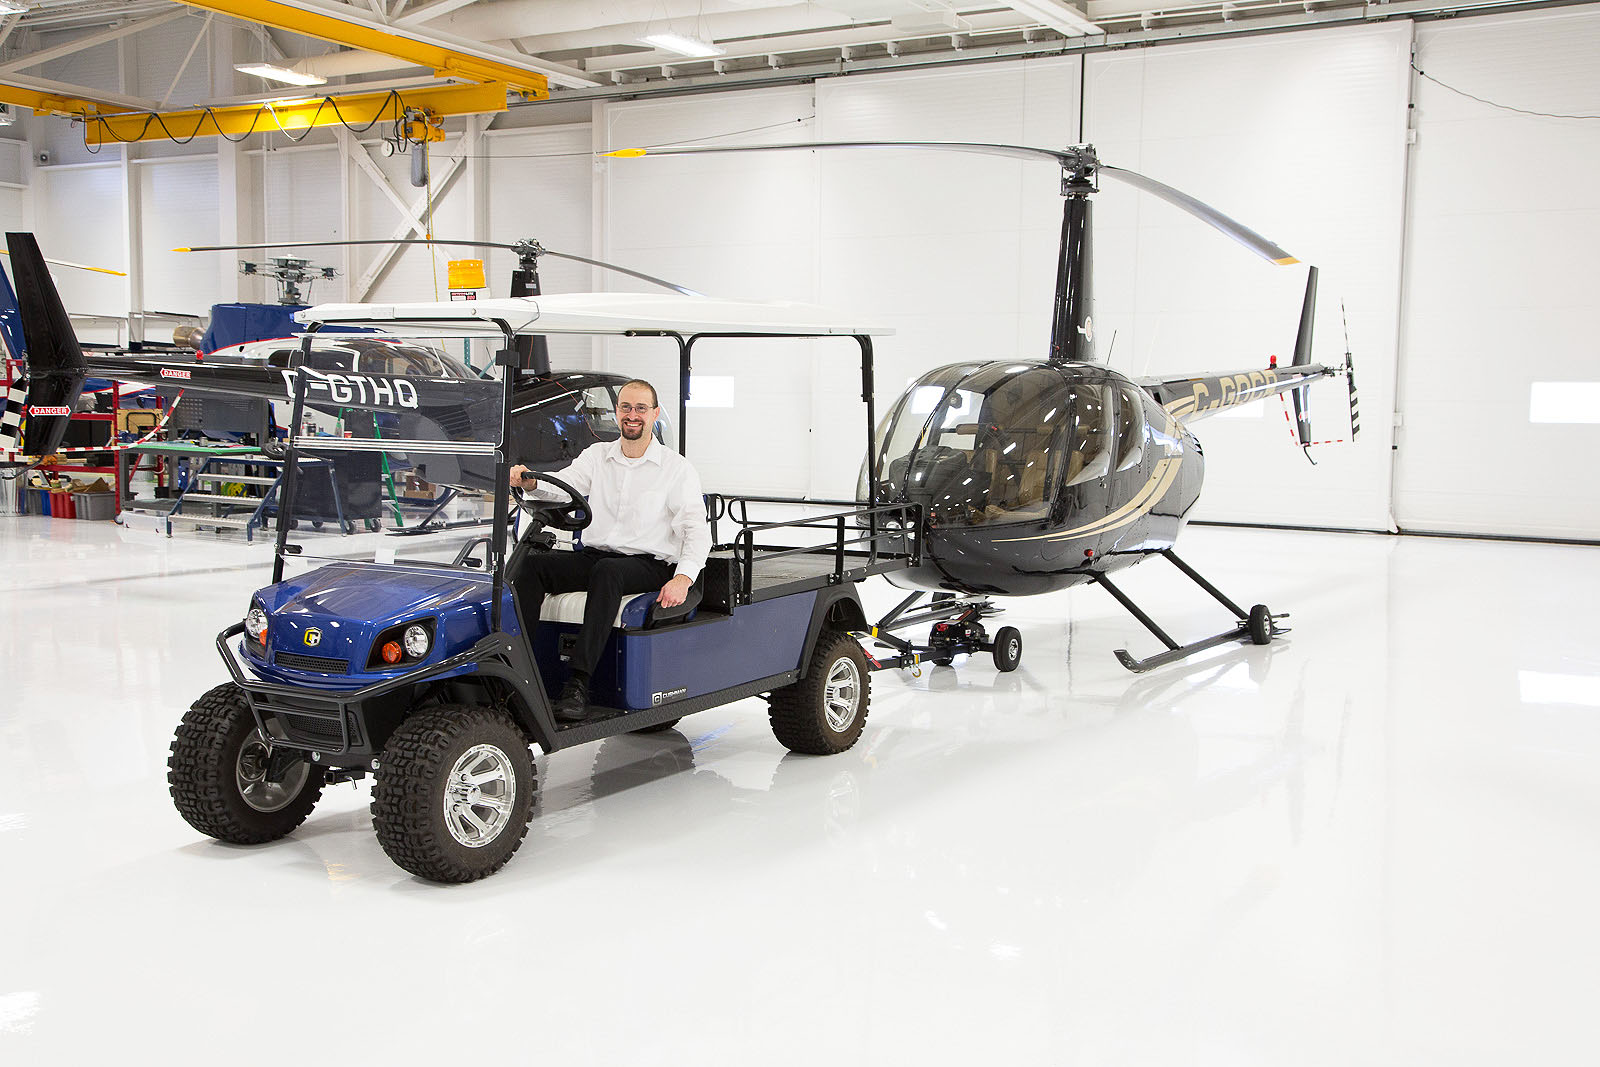 Robinson Helicopter Towbar Accessories Helitowcart Com Helicopter Moving Solutions Accessories